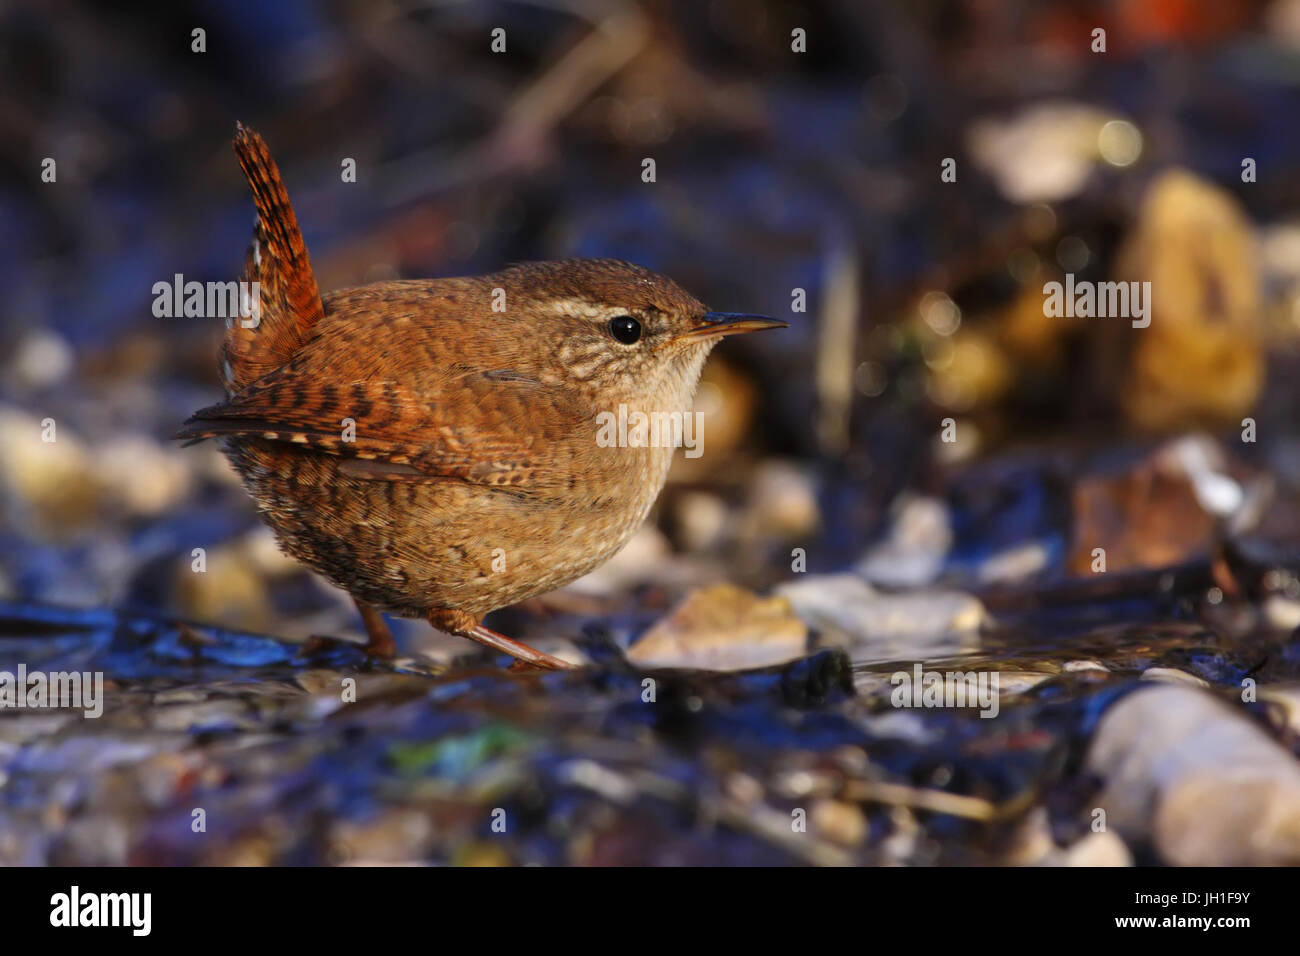 An eurasian wren (Troglodytes troglodytes) come in a river to drink the fresh water. - Stock Image